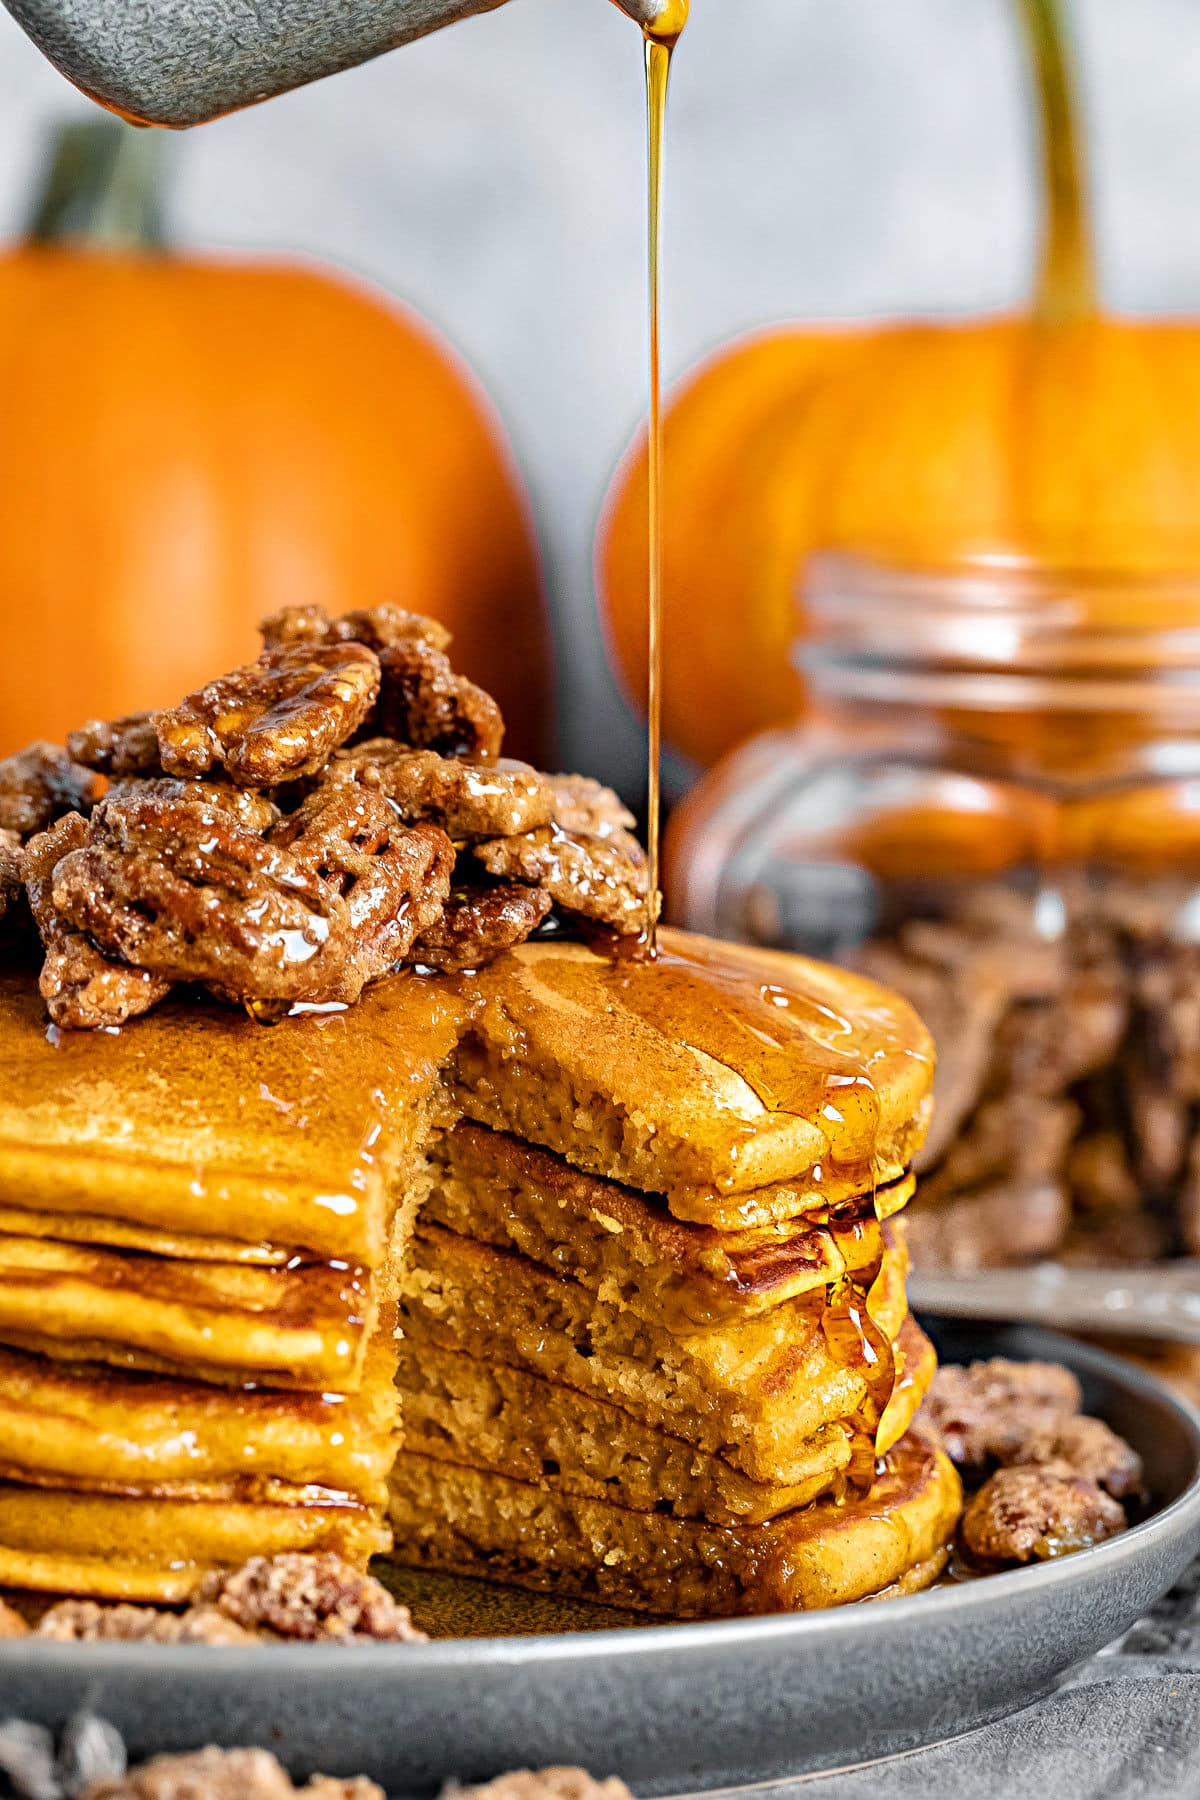 syrup being poured on stack of pumpkin pancakes